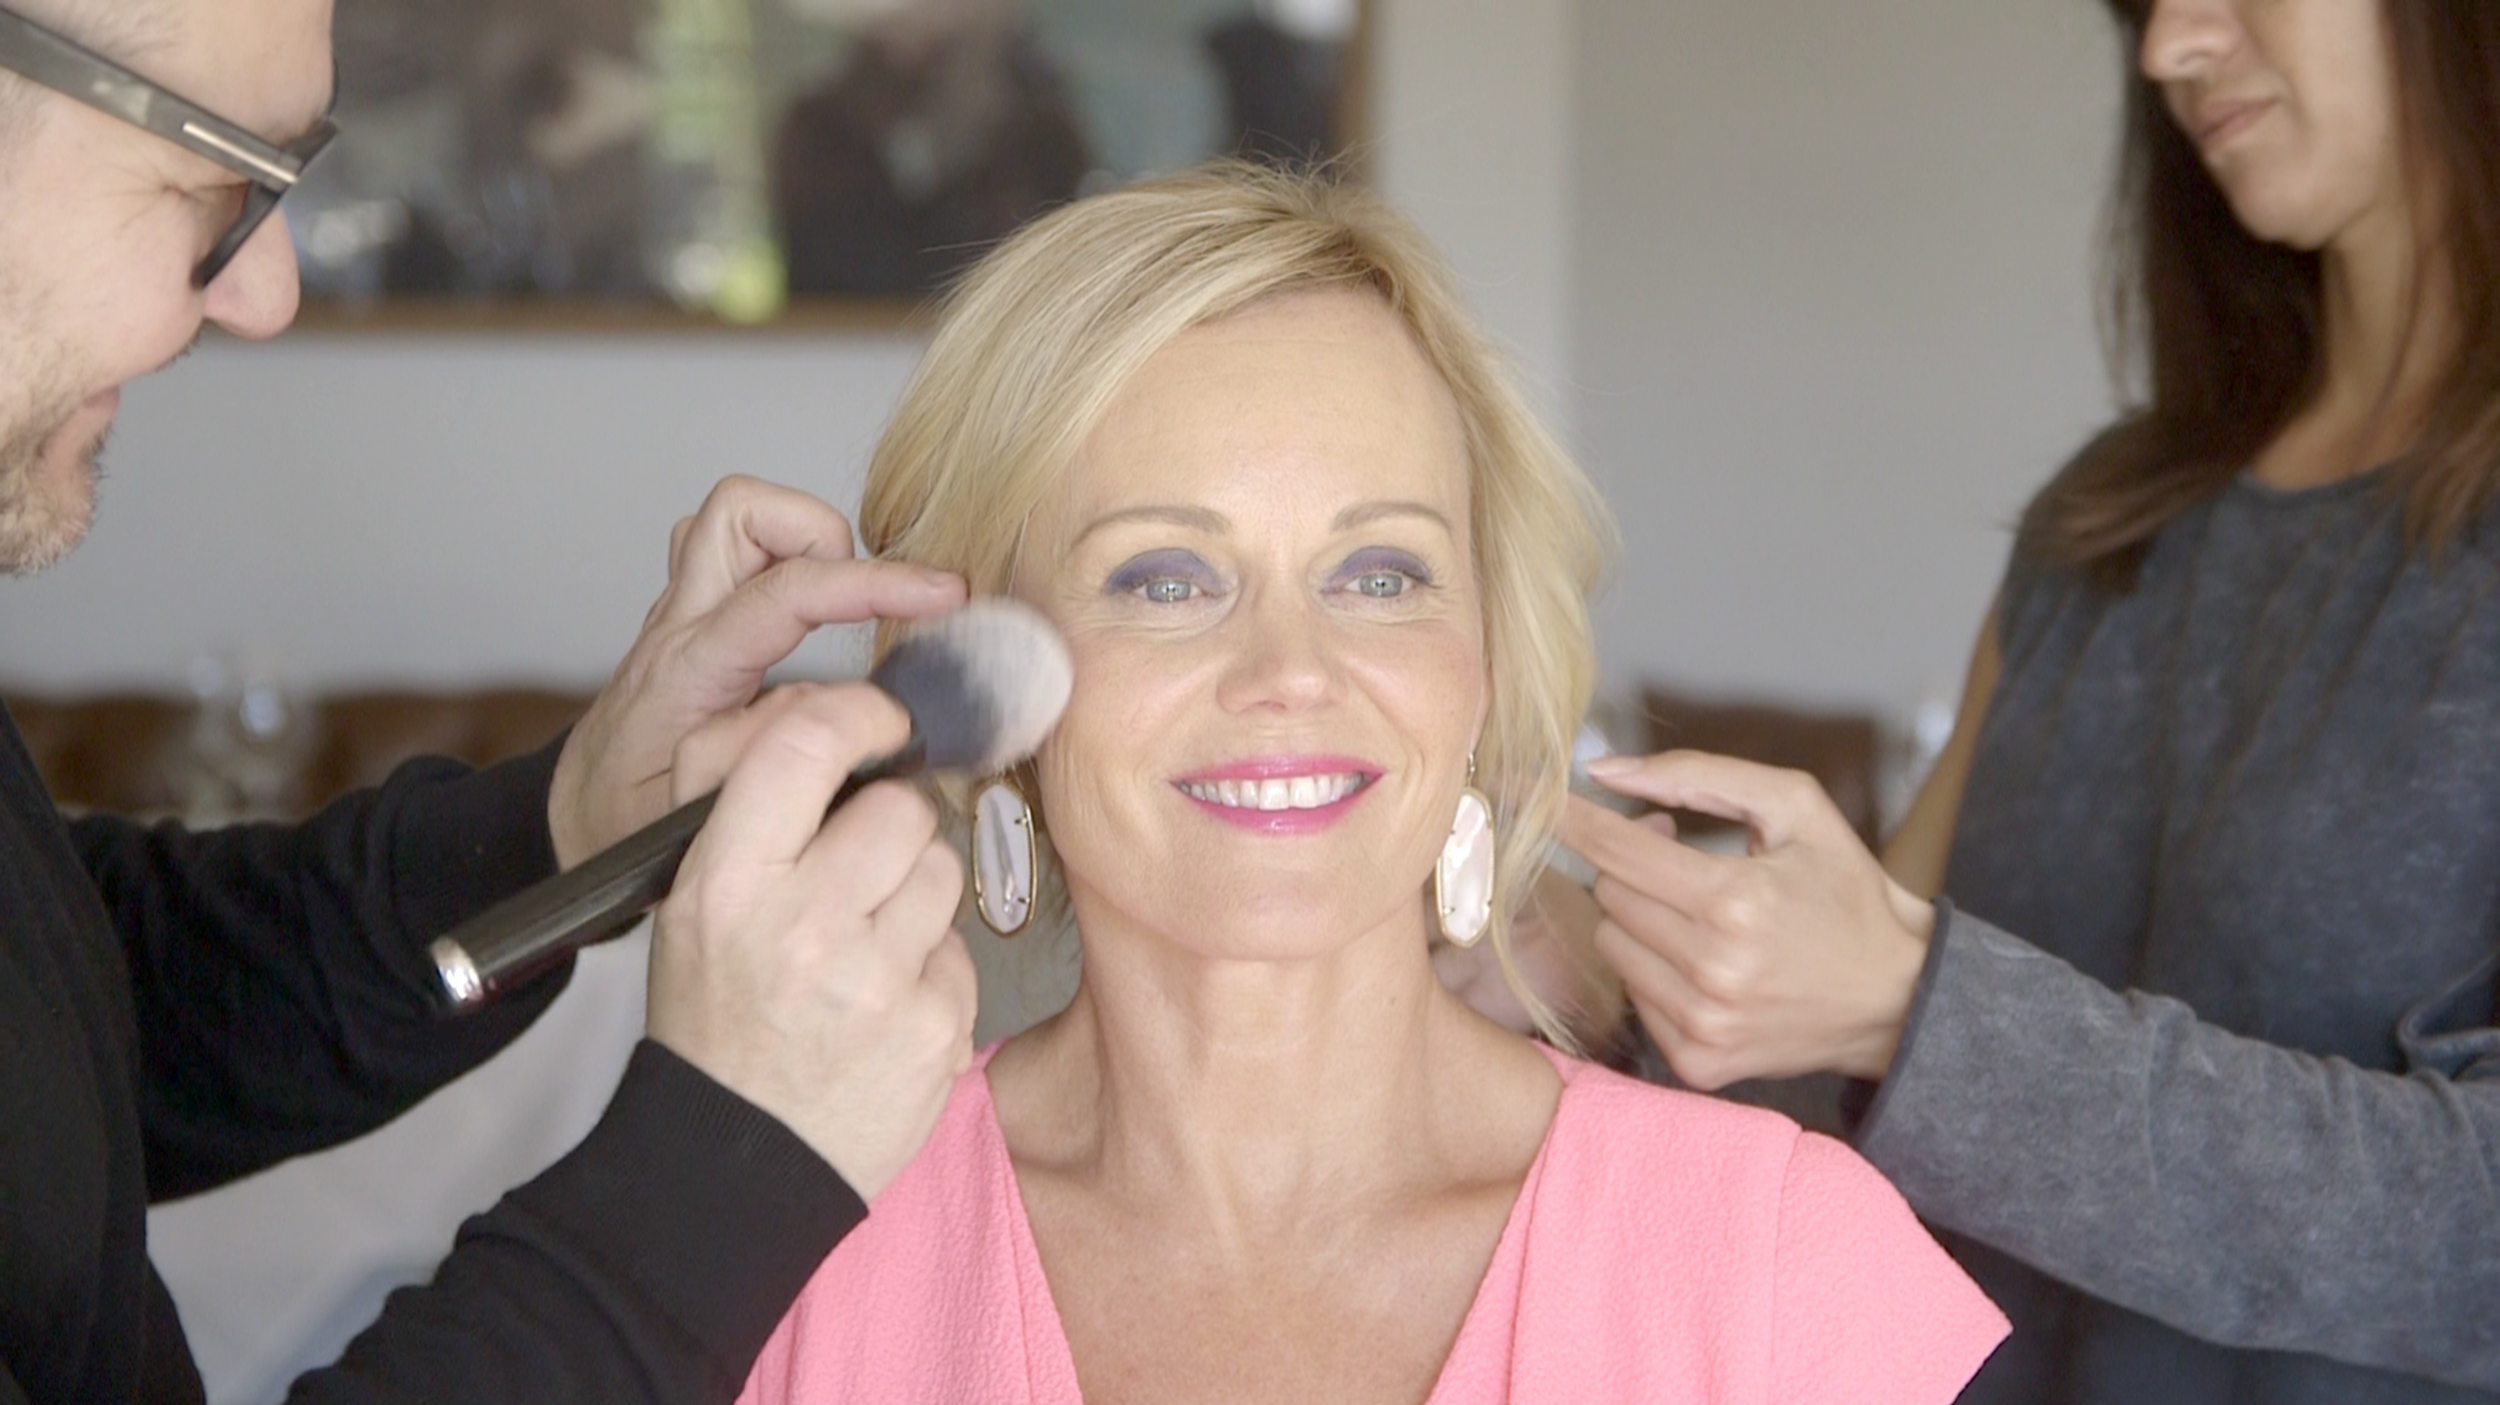 Make up tutorial with Sirpa Selänne and Riku Campo, 2017